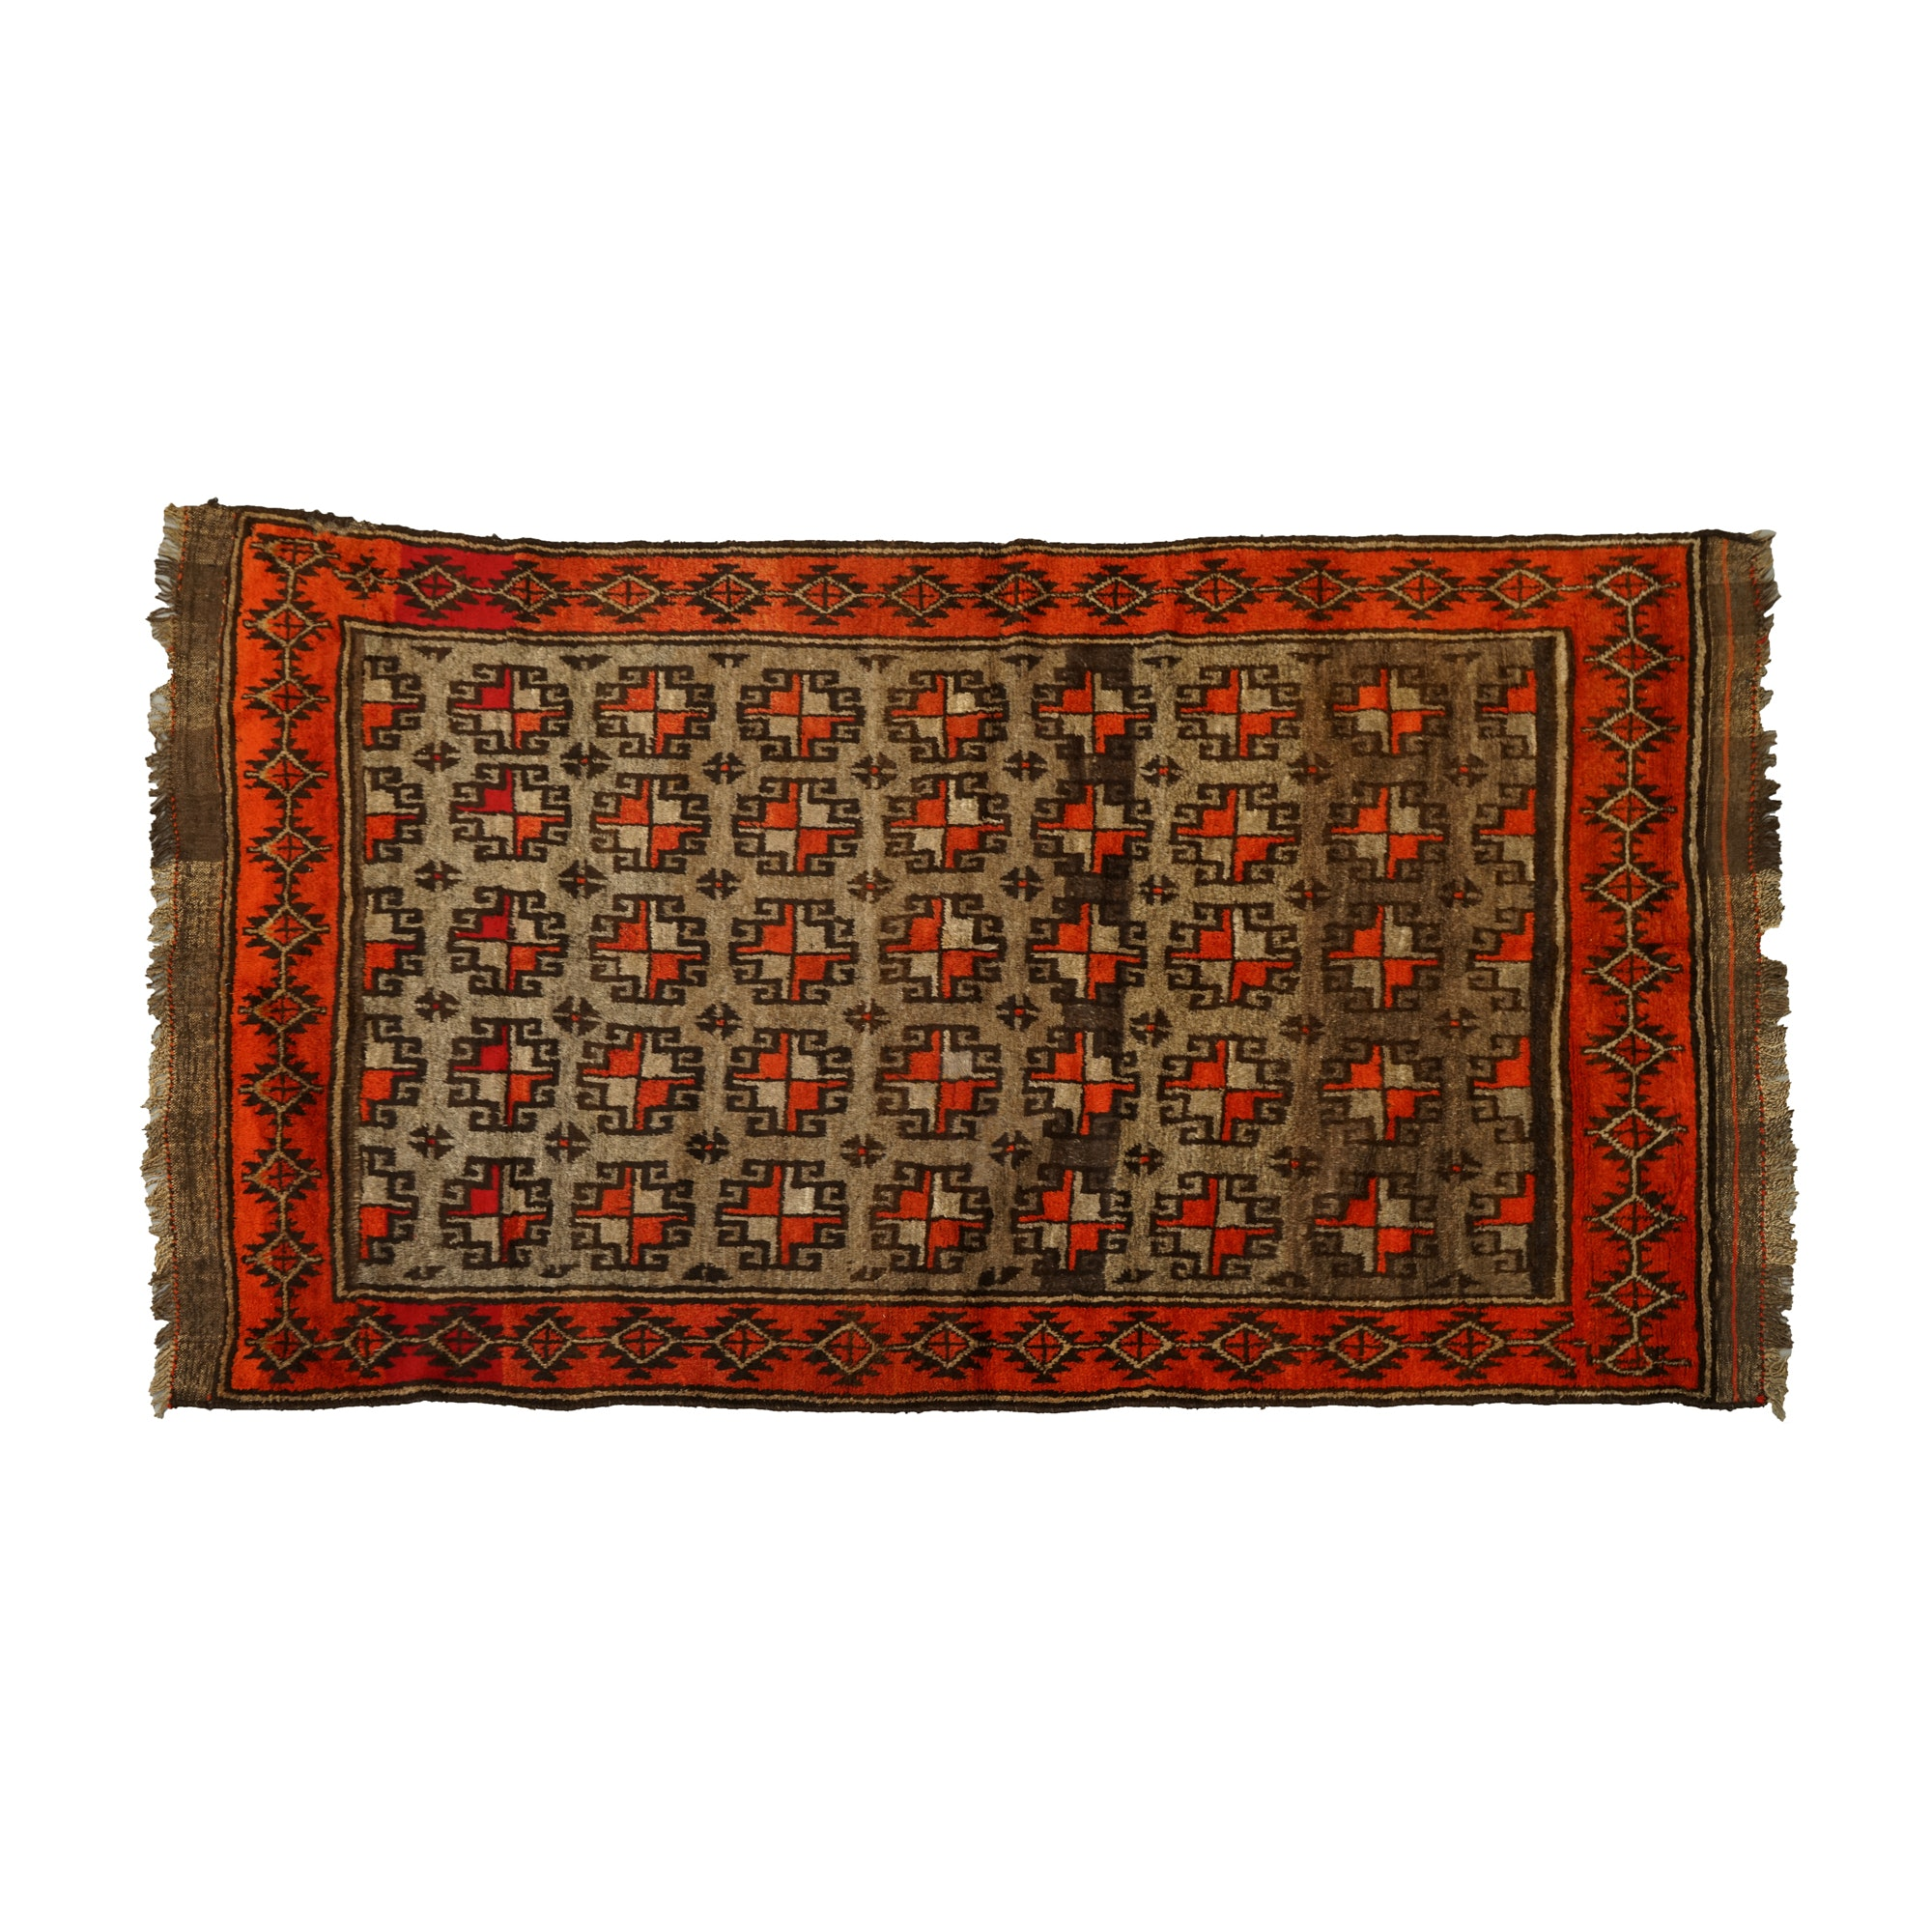 Vintage Hand-Knotted Baluch Wool Area Rug